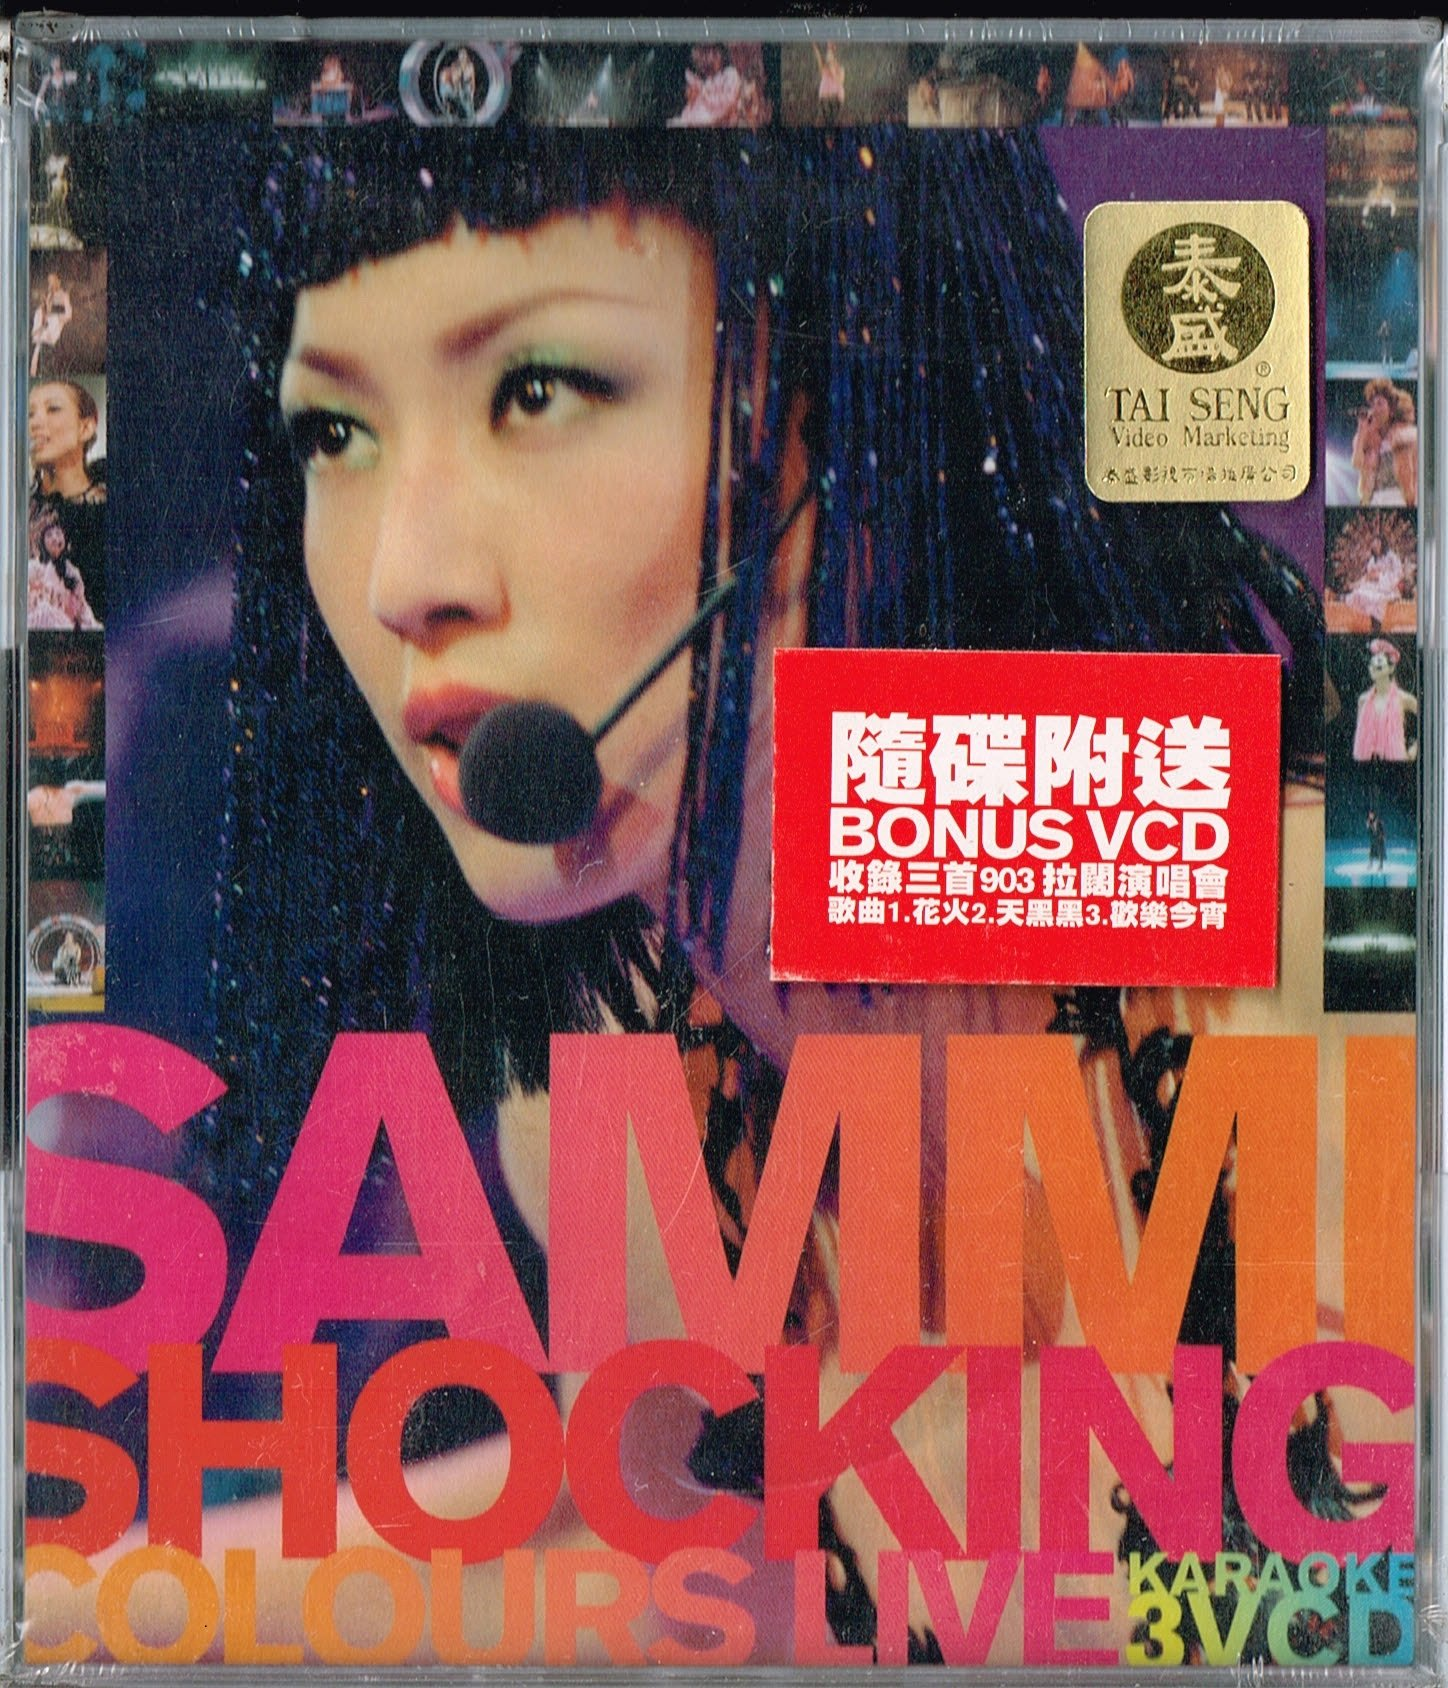 Shocking Colours By Sammi Cheng Live Concert Karaoke VCD Format by